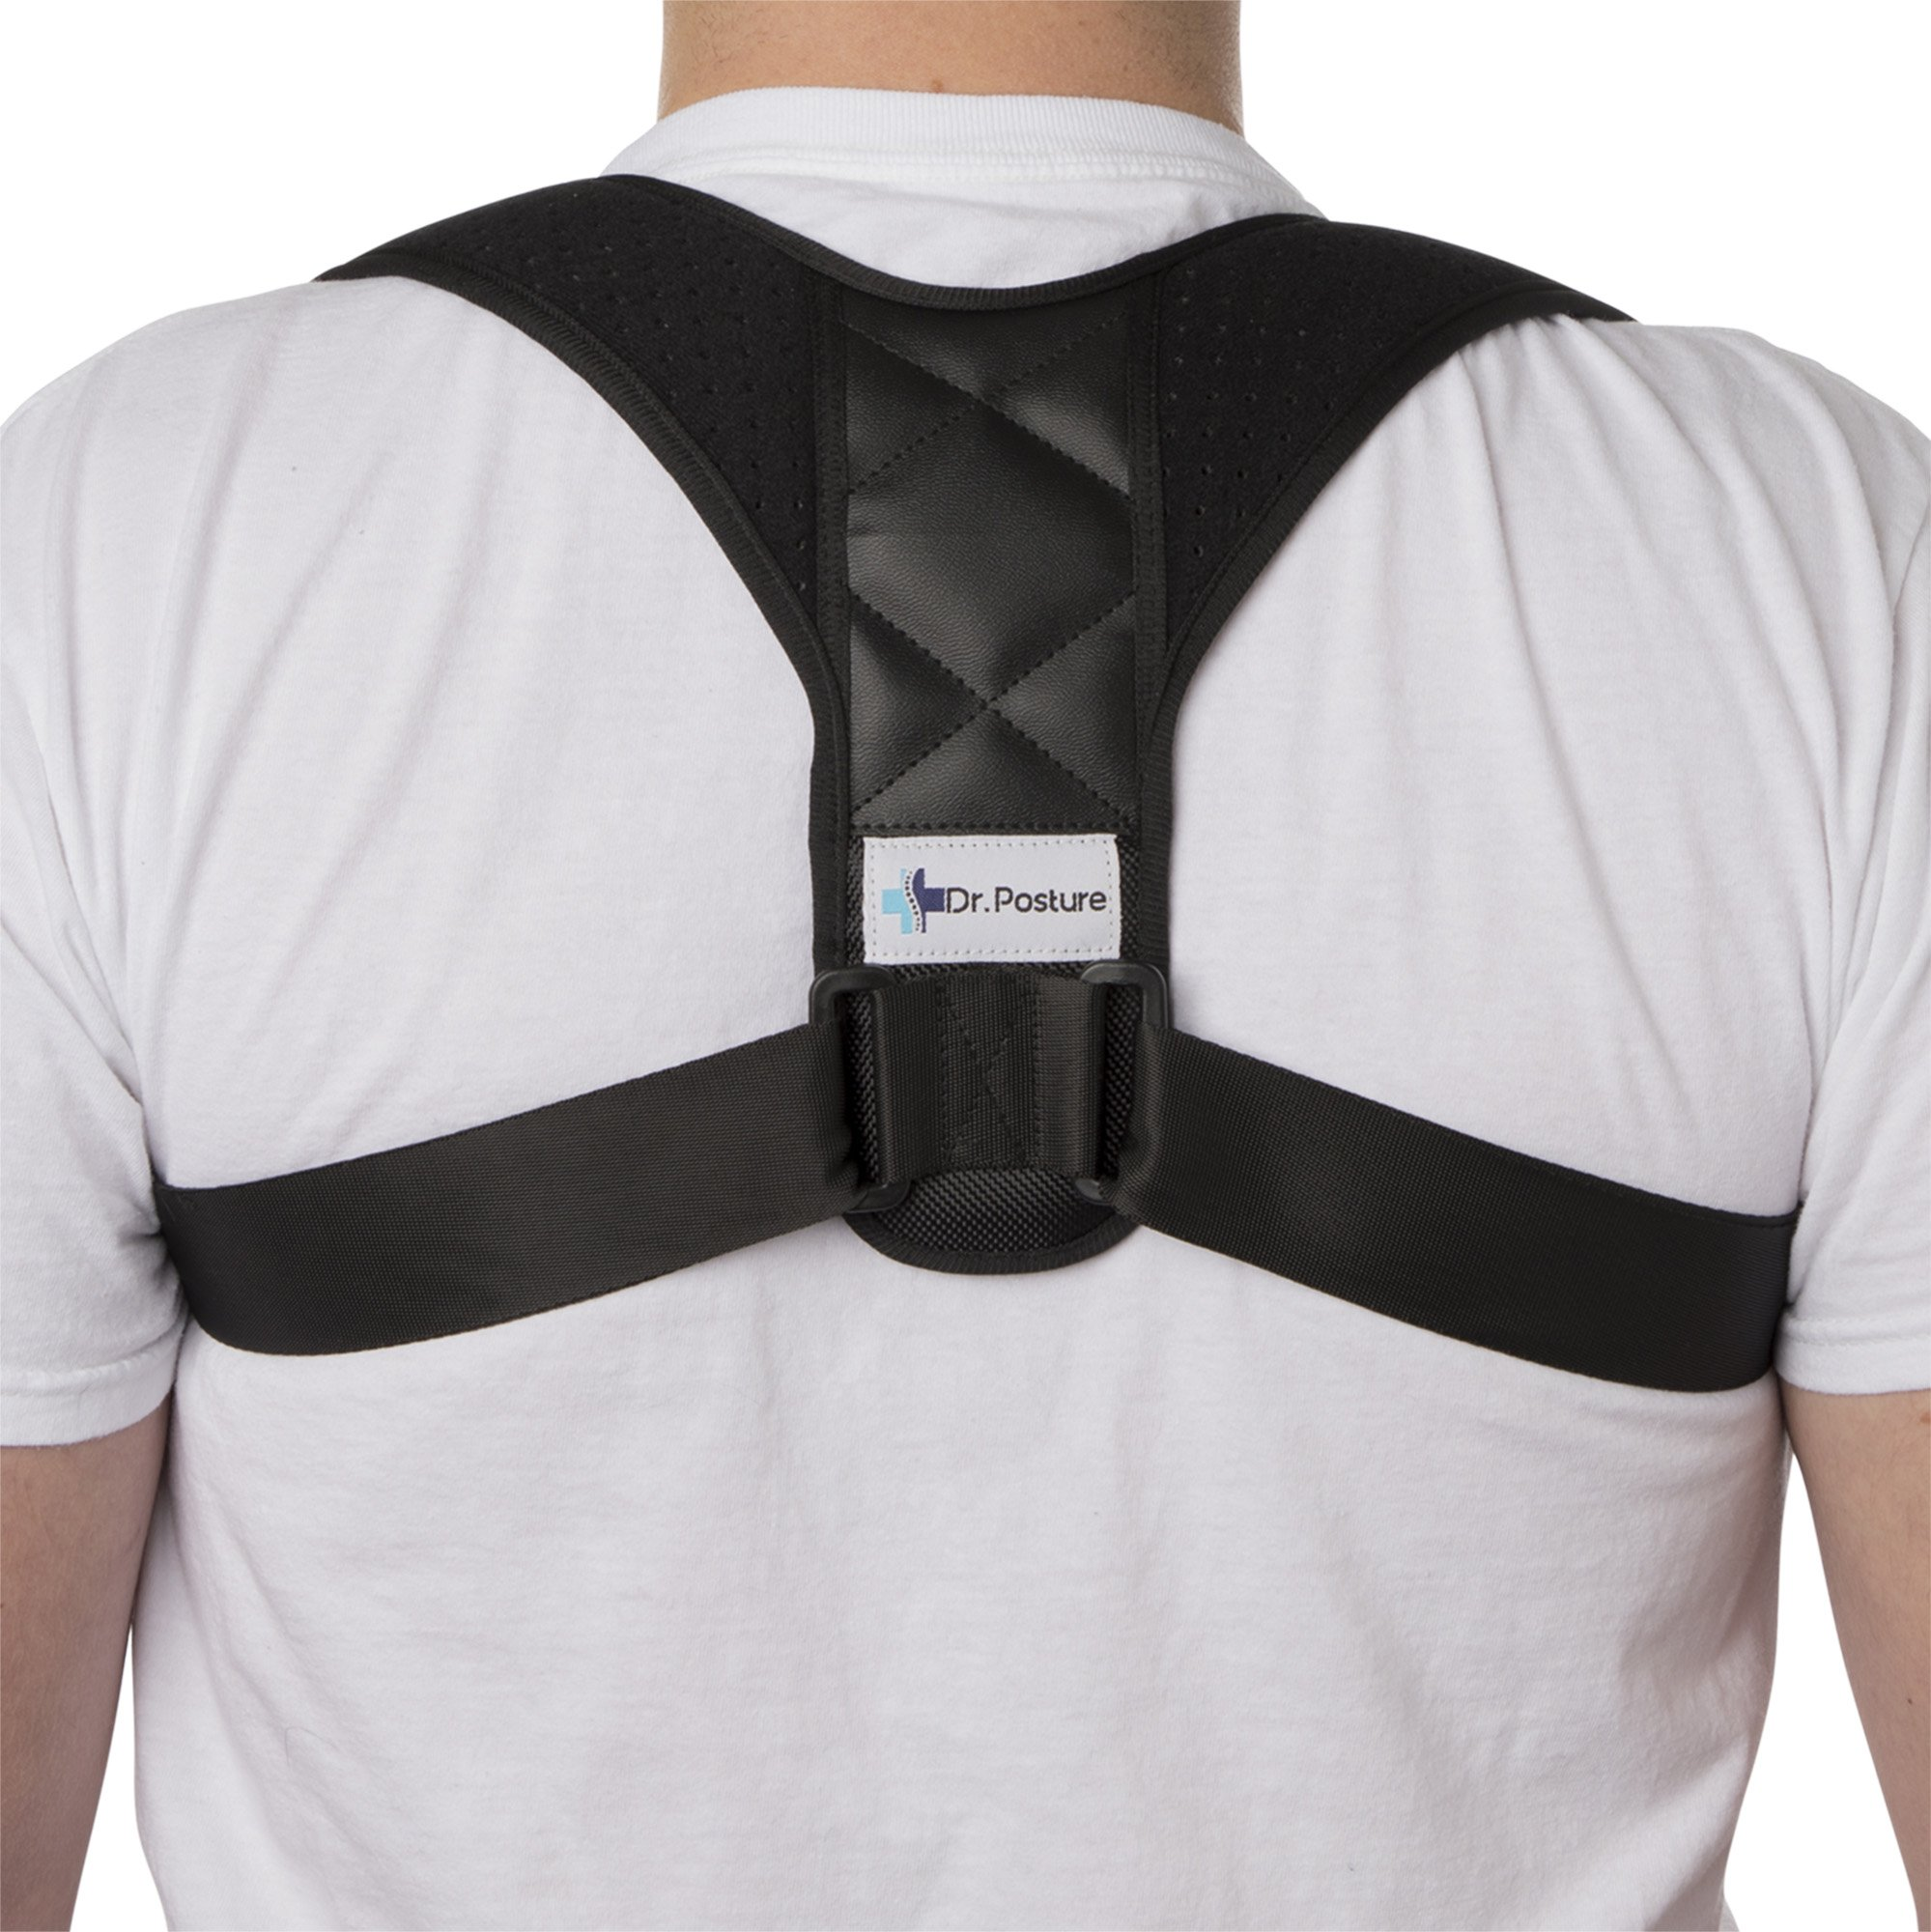 Back Posture Corrector for Women and Men by Dr Posture - Adjustable Posture Back Brace Corrects Smart Phone and Computer-Related Posture Problems - Clavicle Support Improves Breathing and Confidence